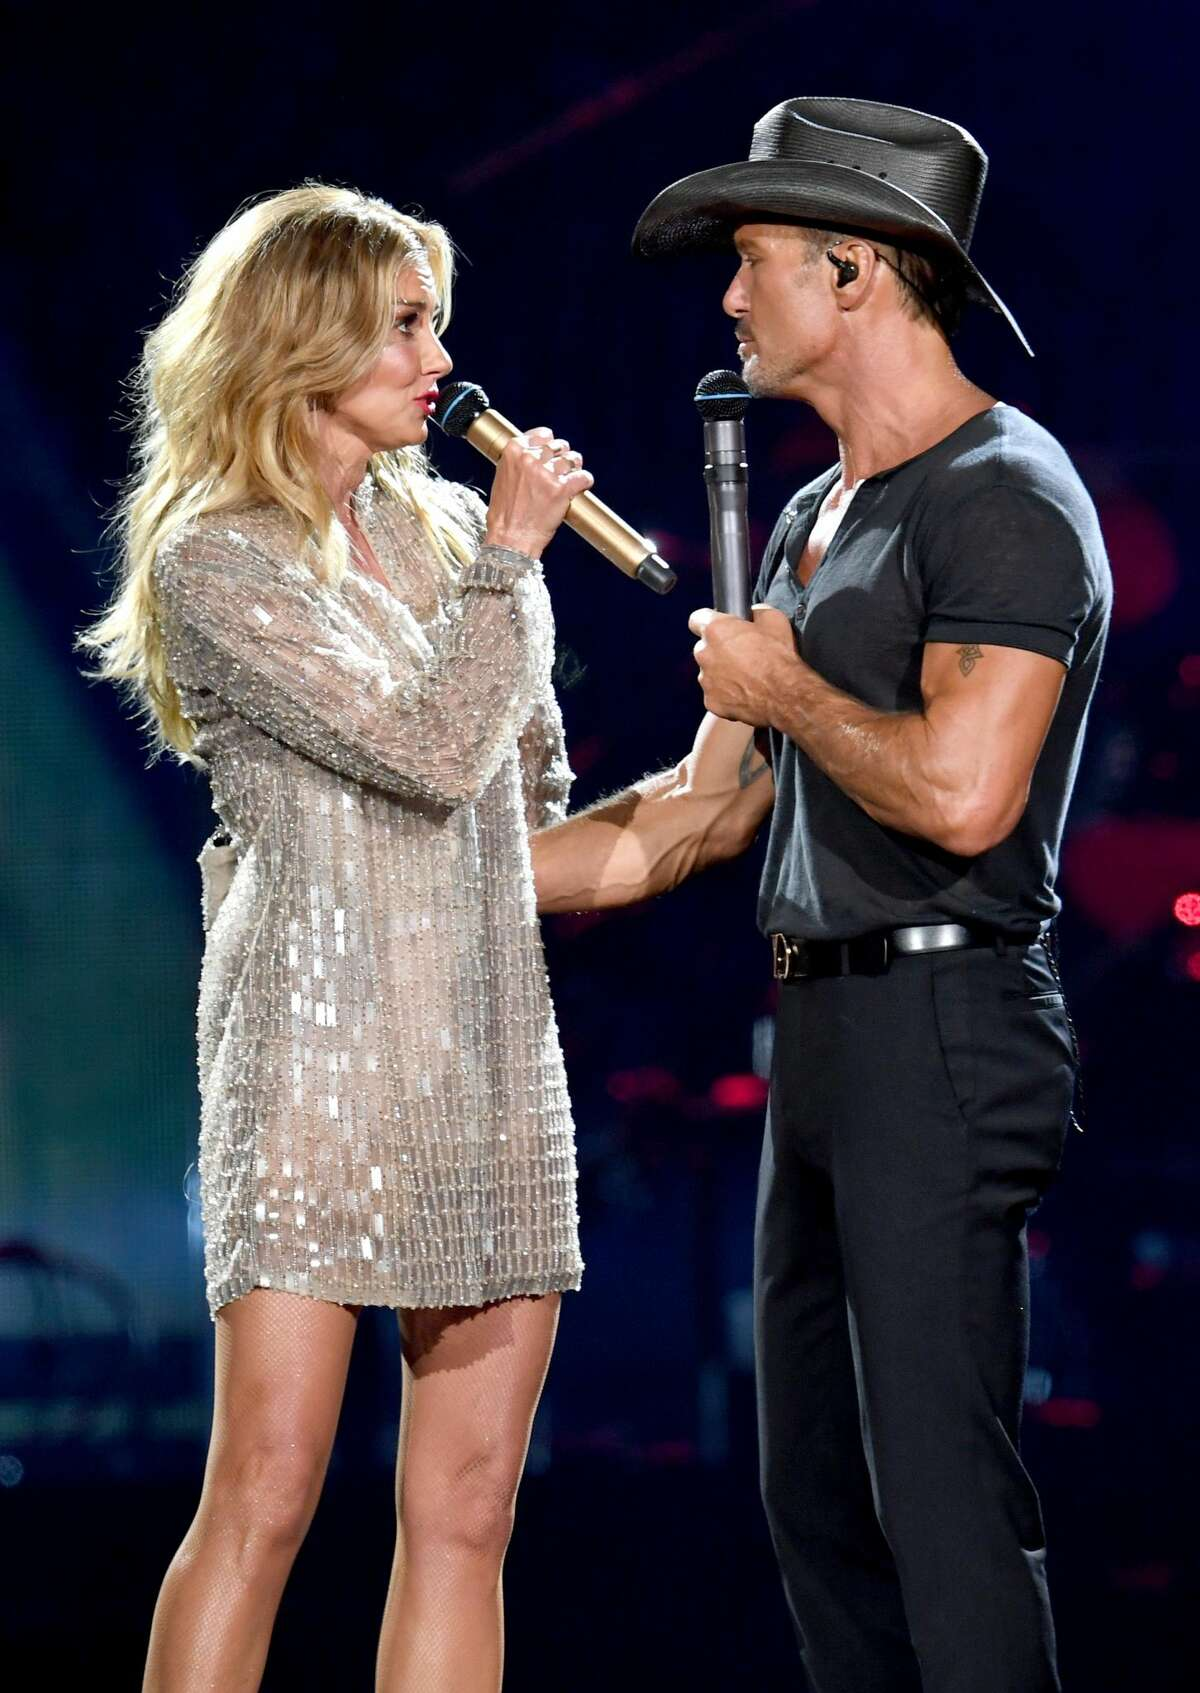 Faith Hill and Tim McGraw: The country singers will be performing at the Toyota Center on Friday, Oct. 6 at 7:30 p.m. More Details: www.houstontoyotacenter.com